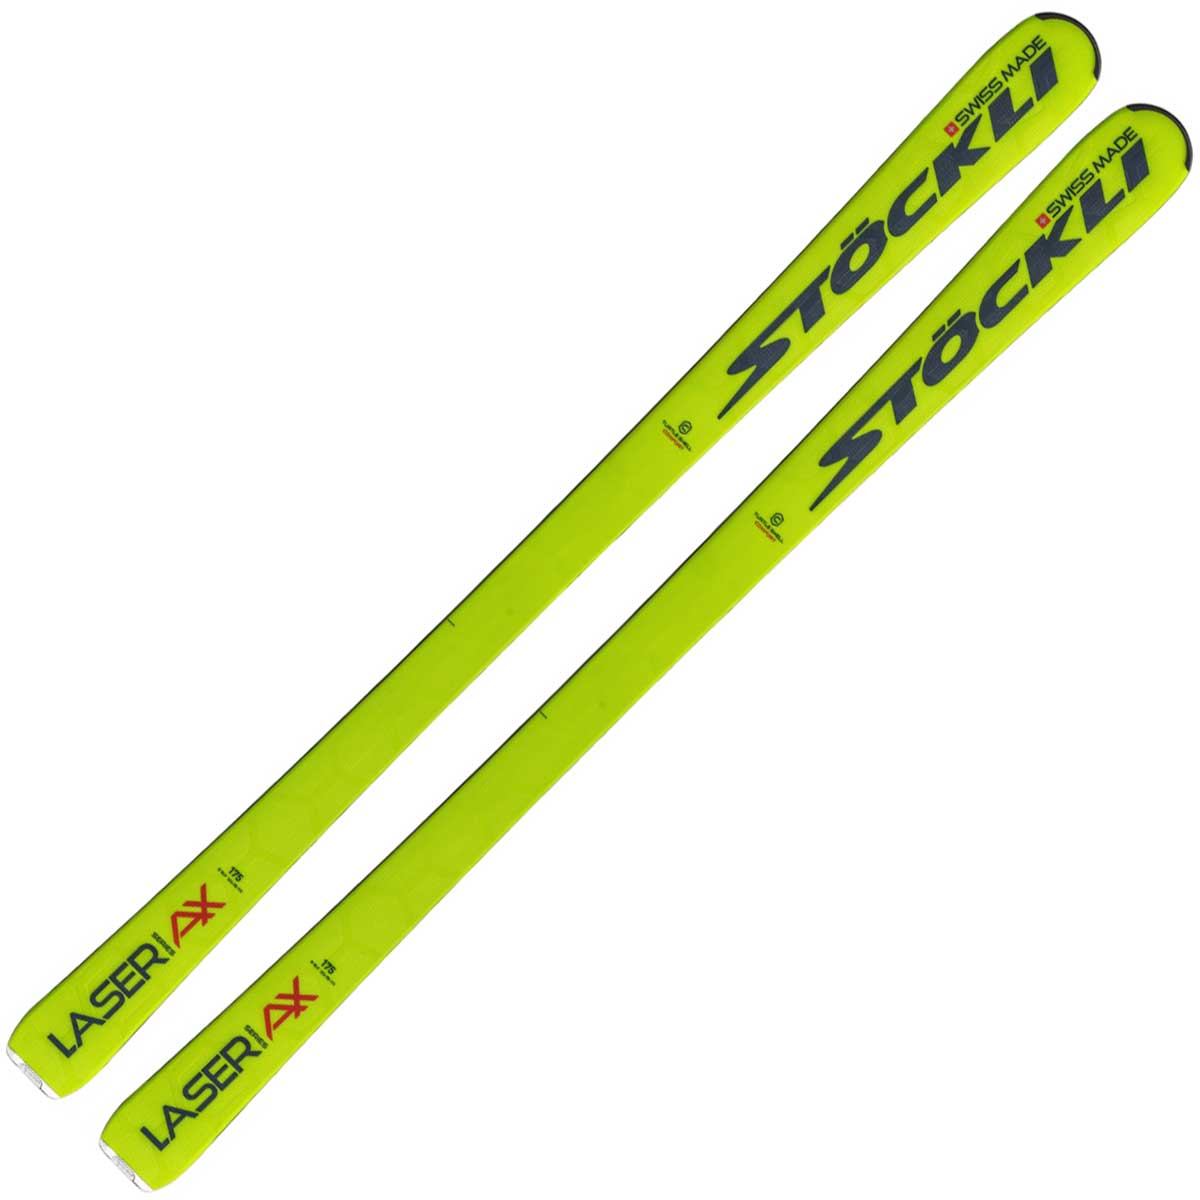 Stockli Laser AX ski in yellow and blue